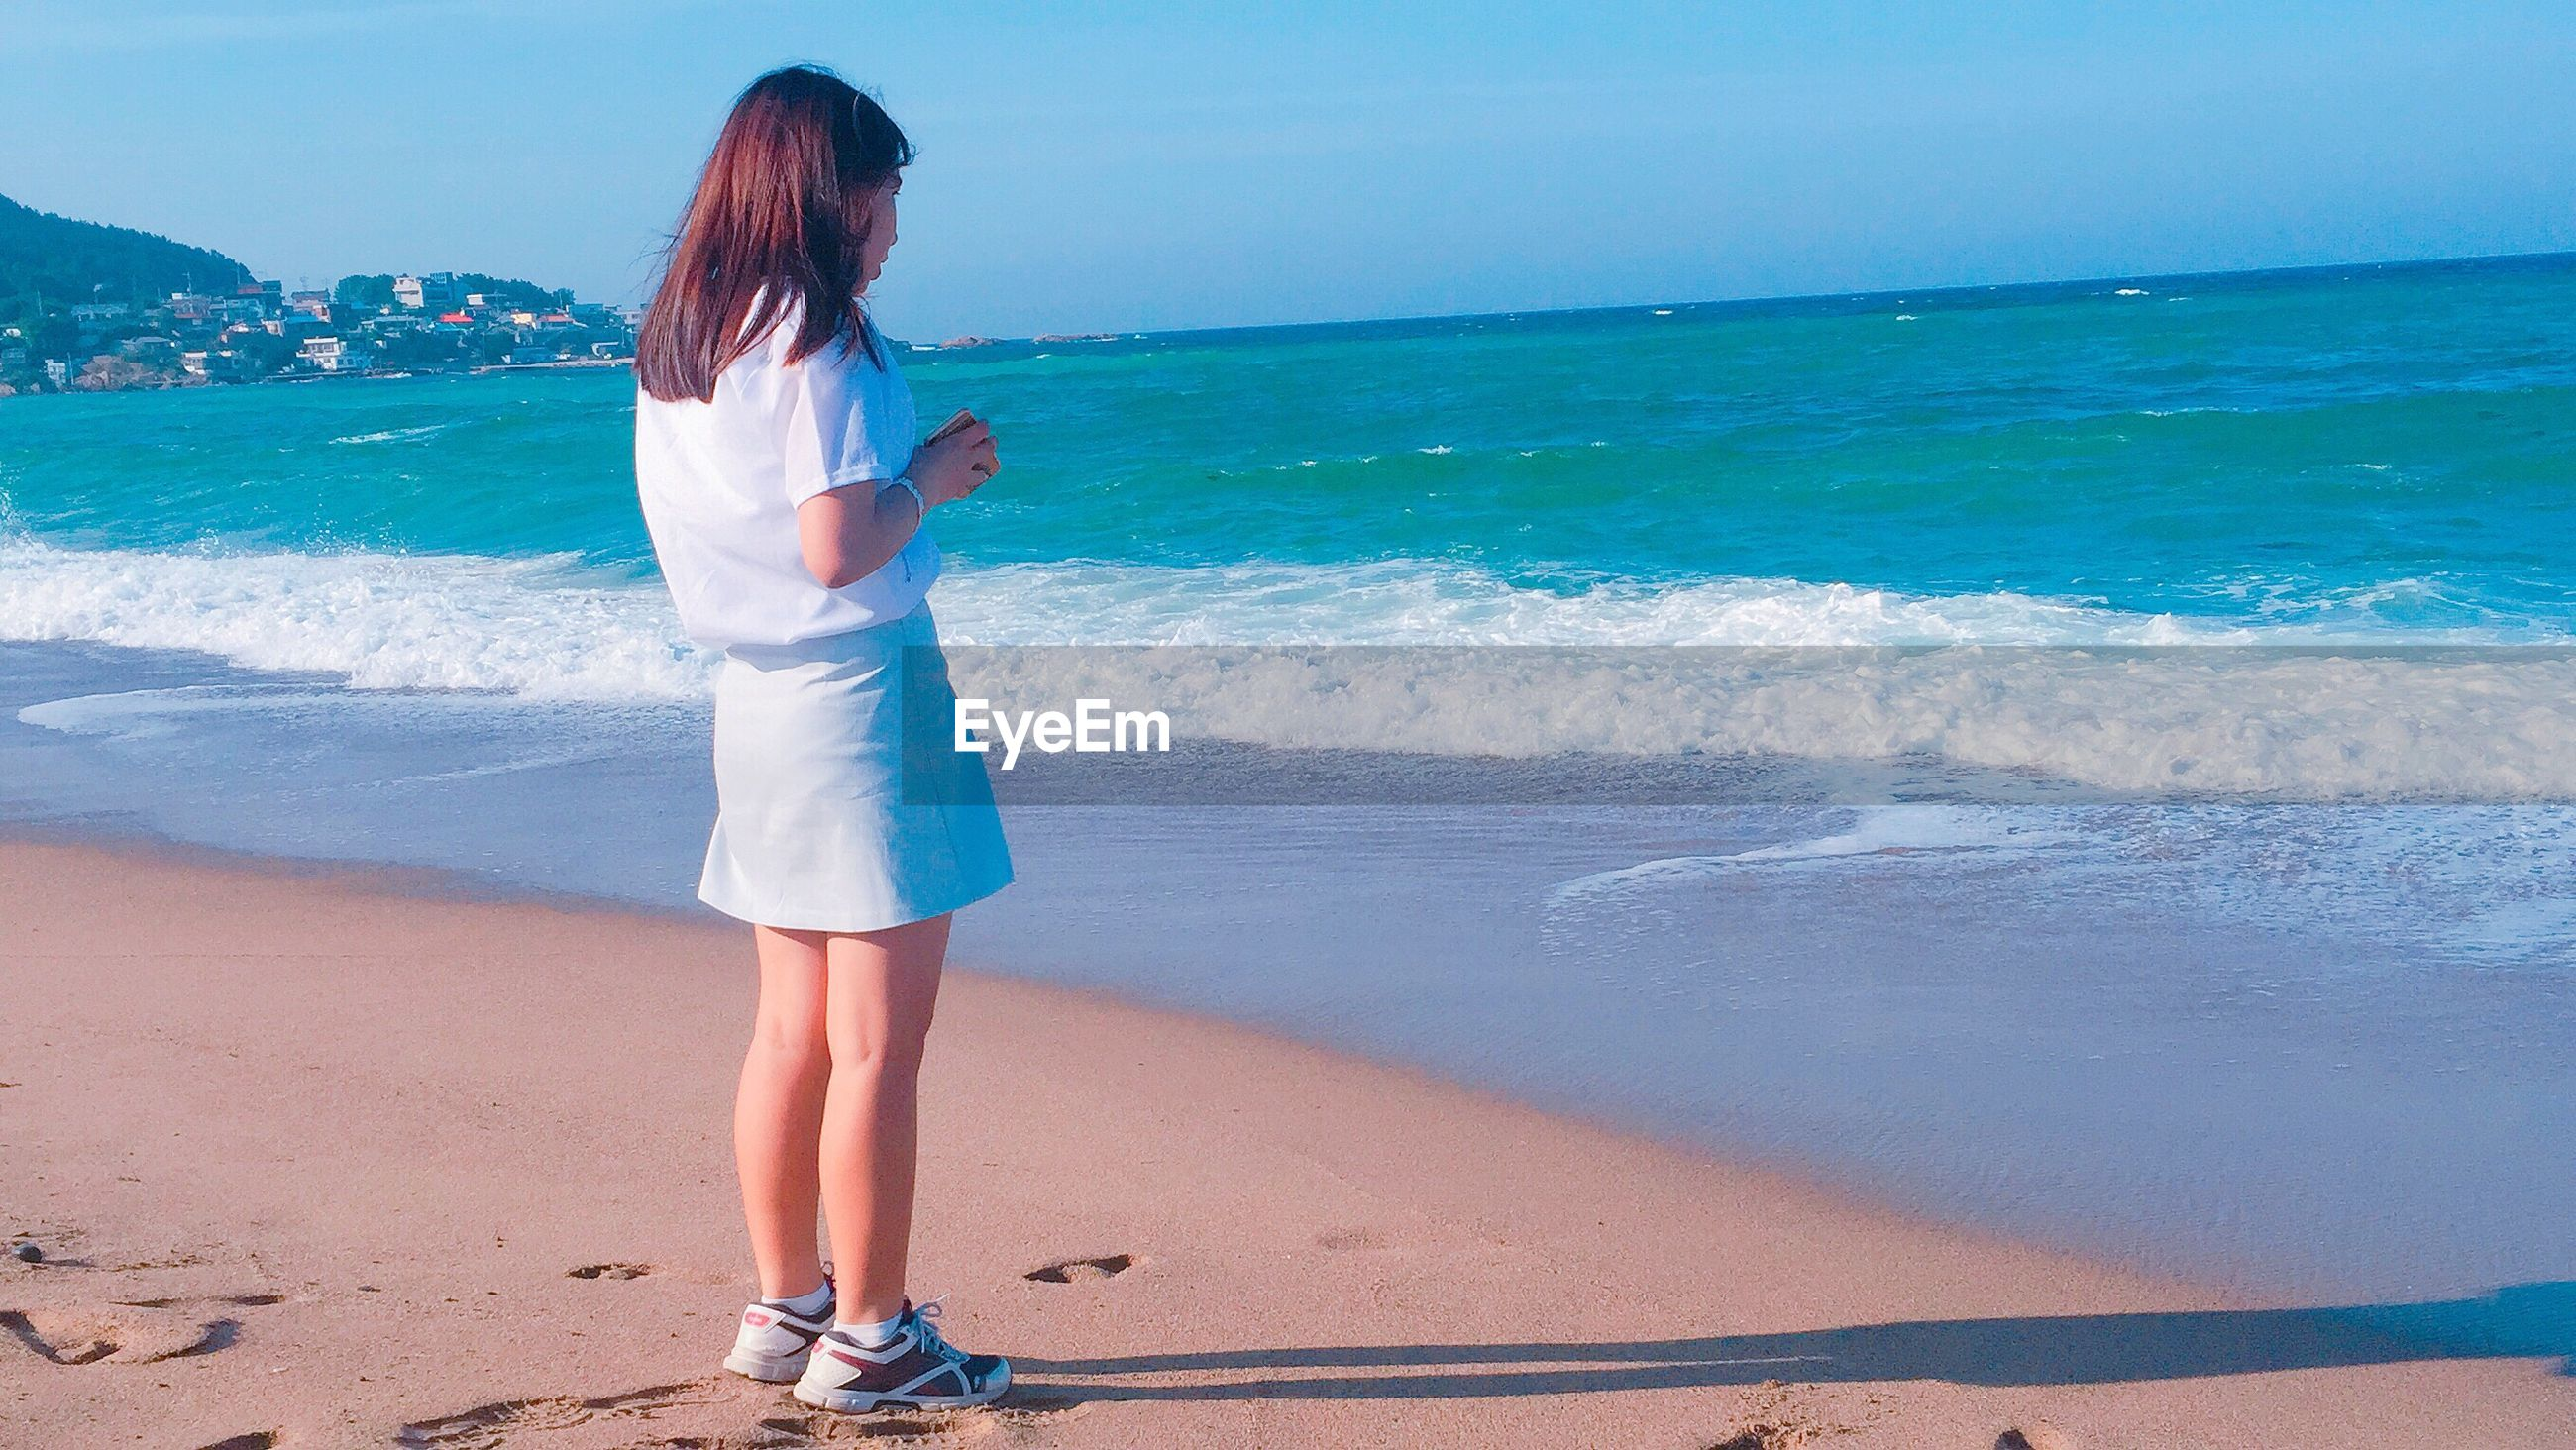 beach, sea, water, shore, sand, horizon over water, leisure activity, lifestyles, wave, vacations, full length, rear view, surf, standing, beauty in nature, casual clothing, person, nature